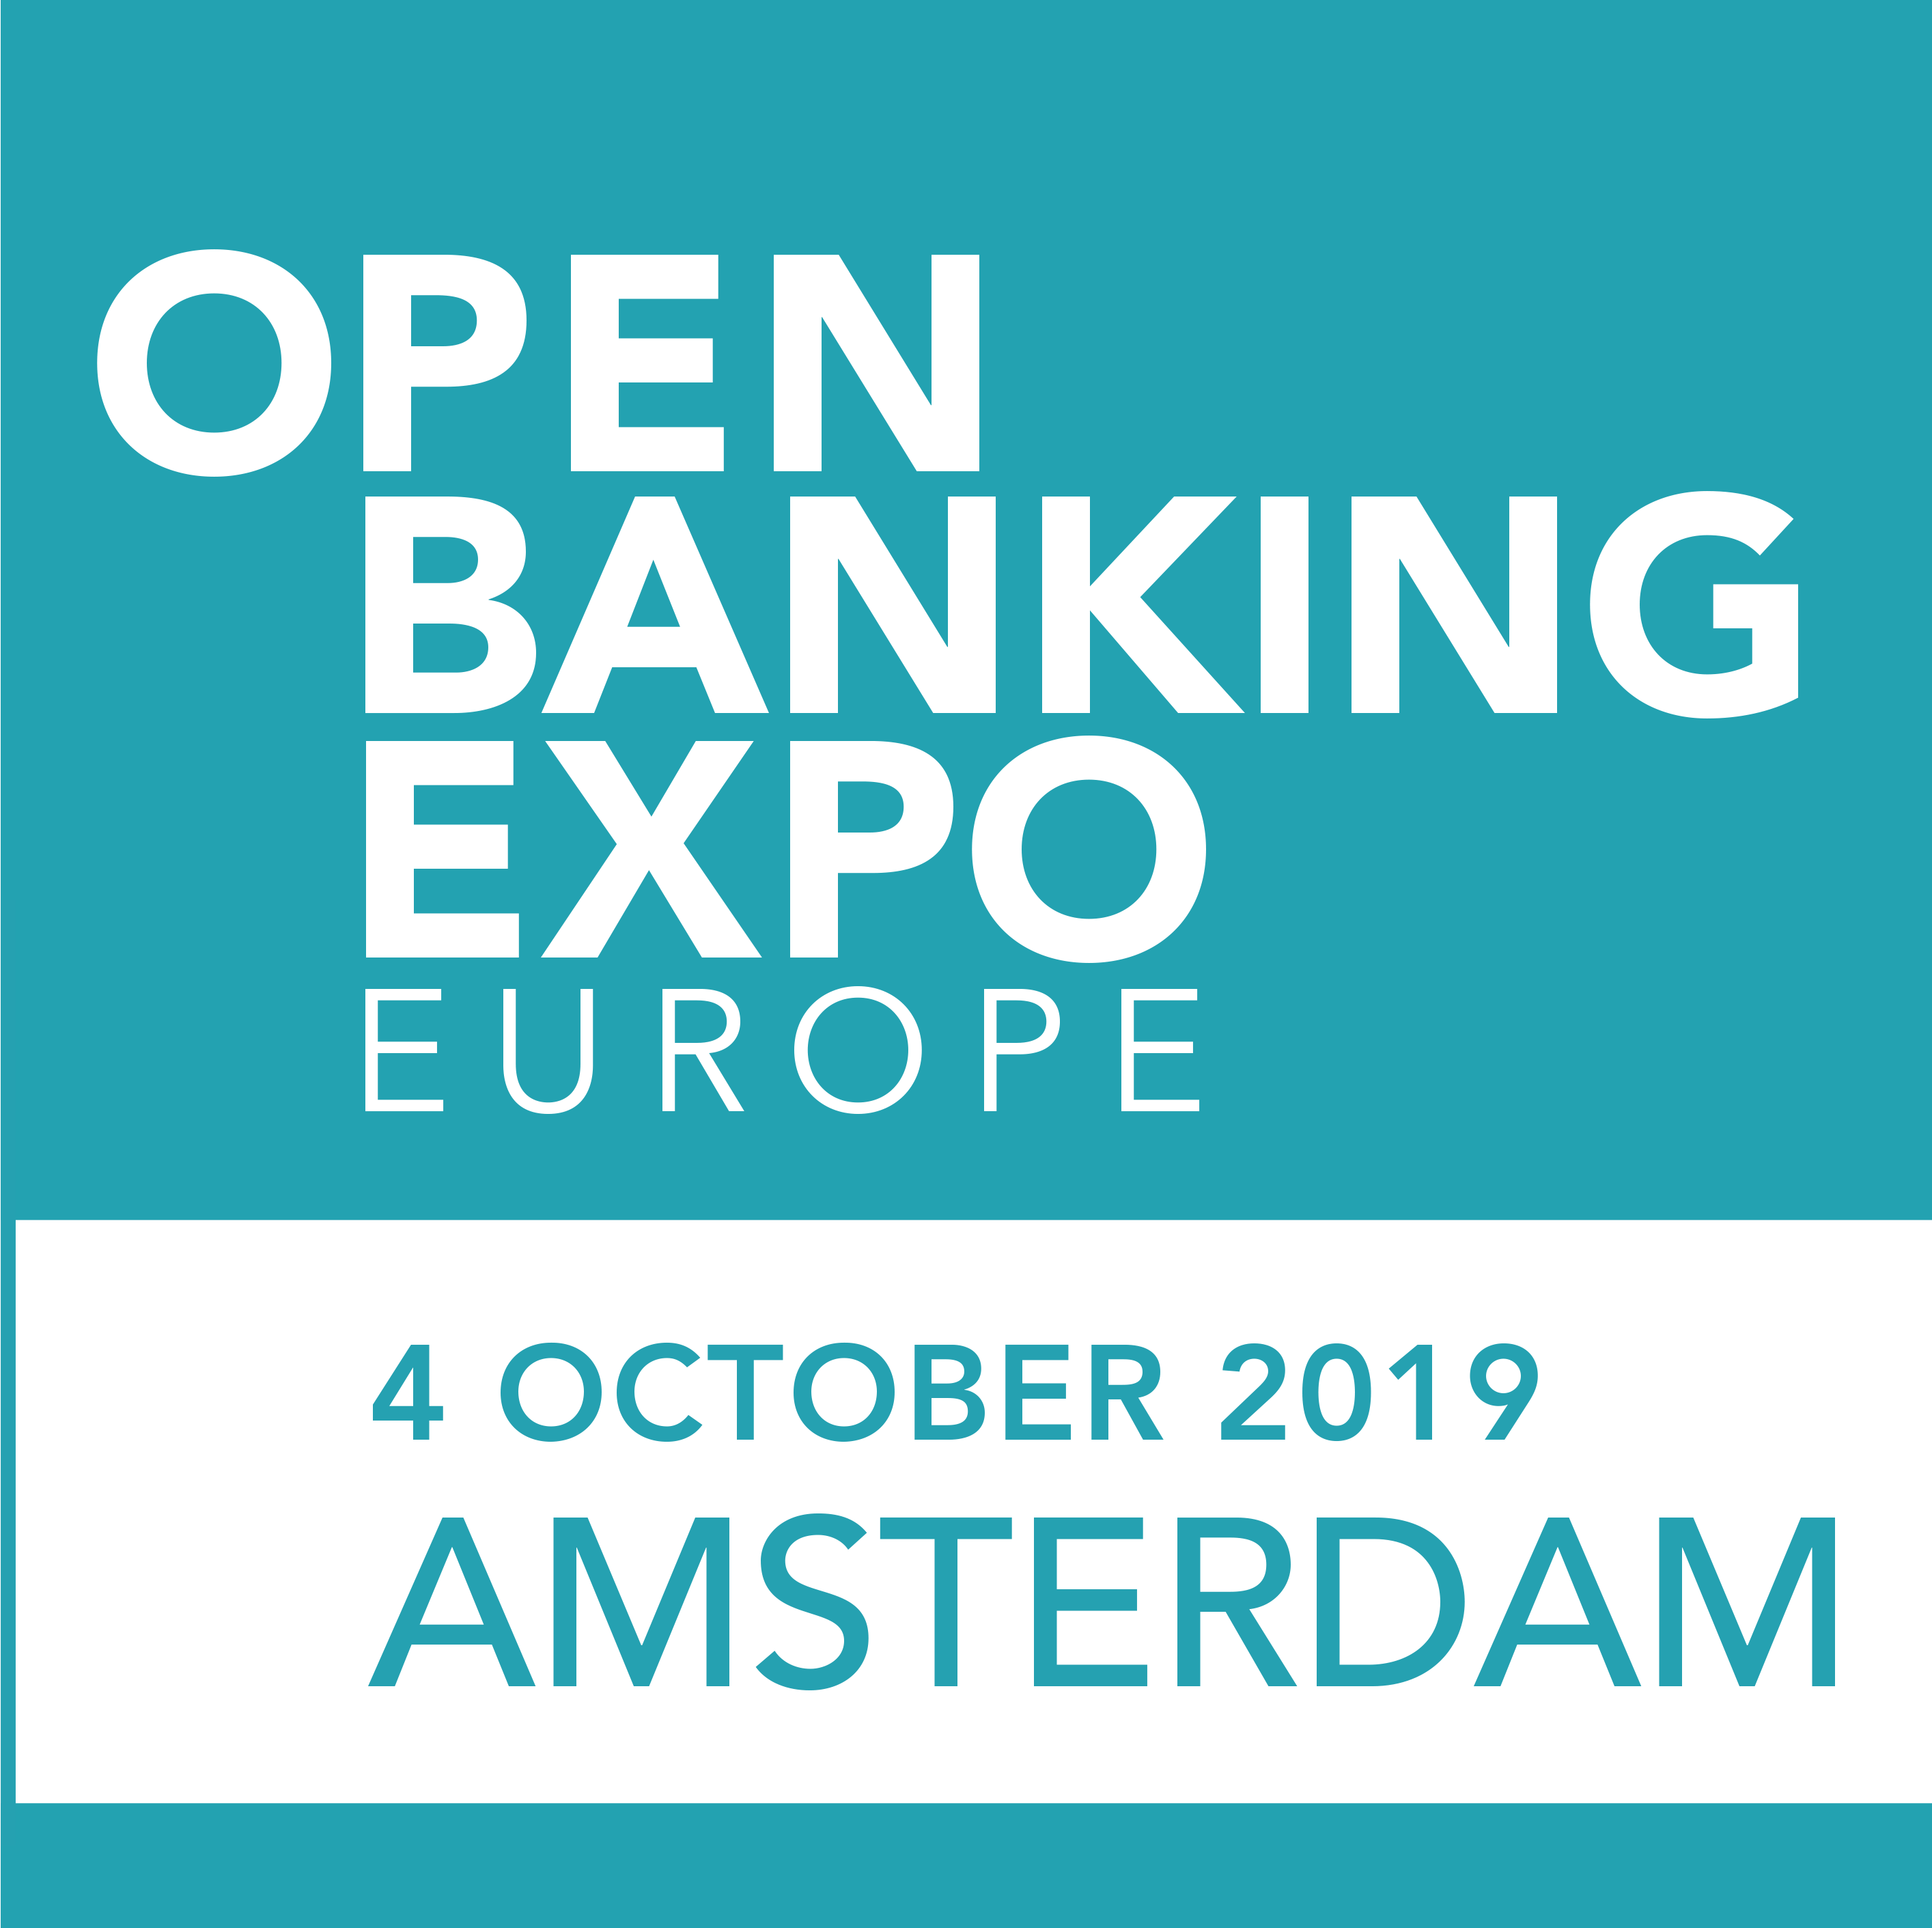 Open Banking Expo's Amsterdam conference logo.